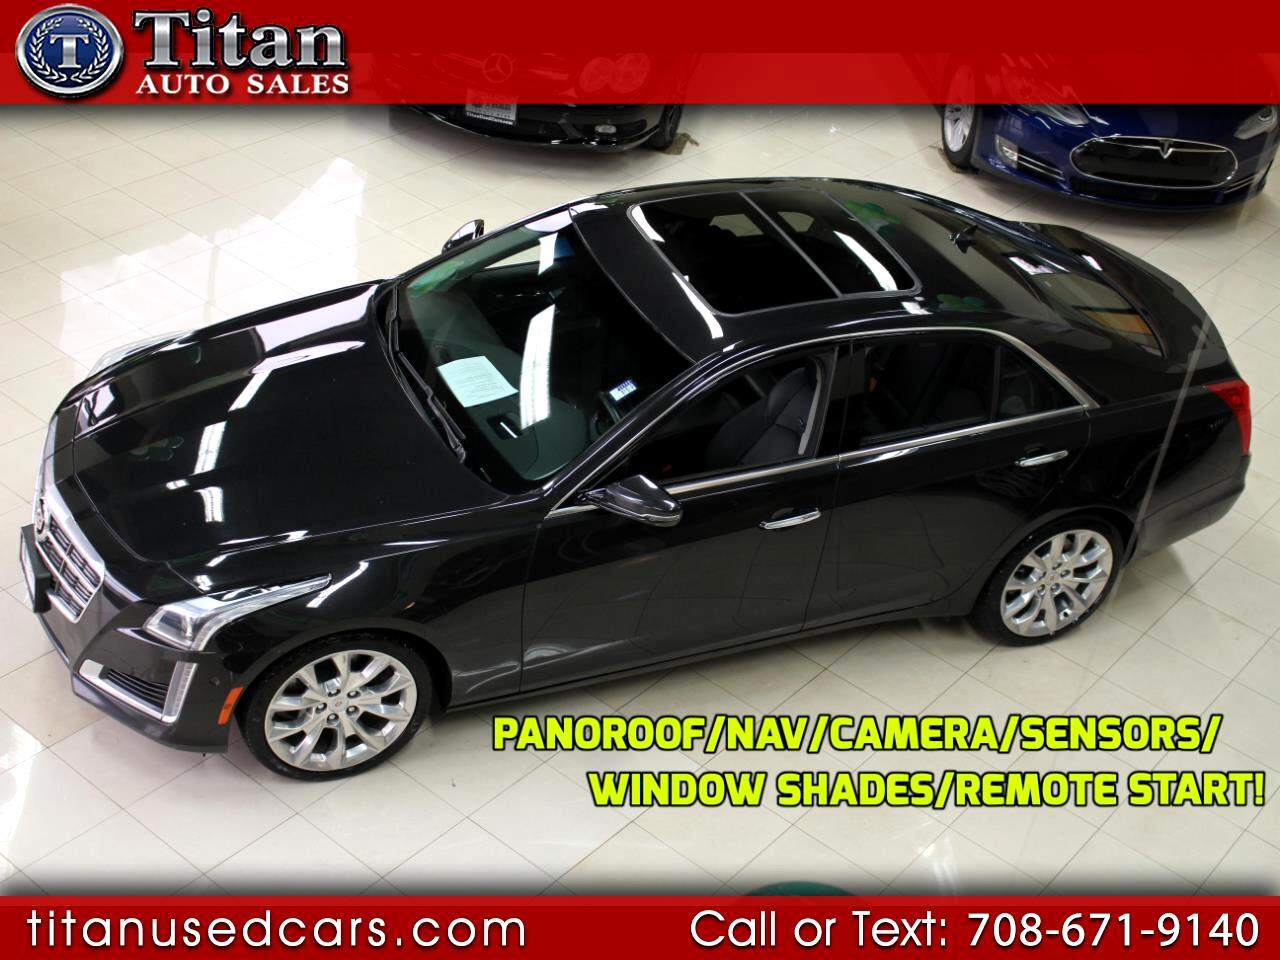 2014 Cadillac CTS Sedan 2.0 Turbo Performance AWD